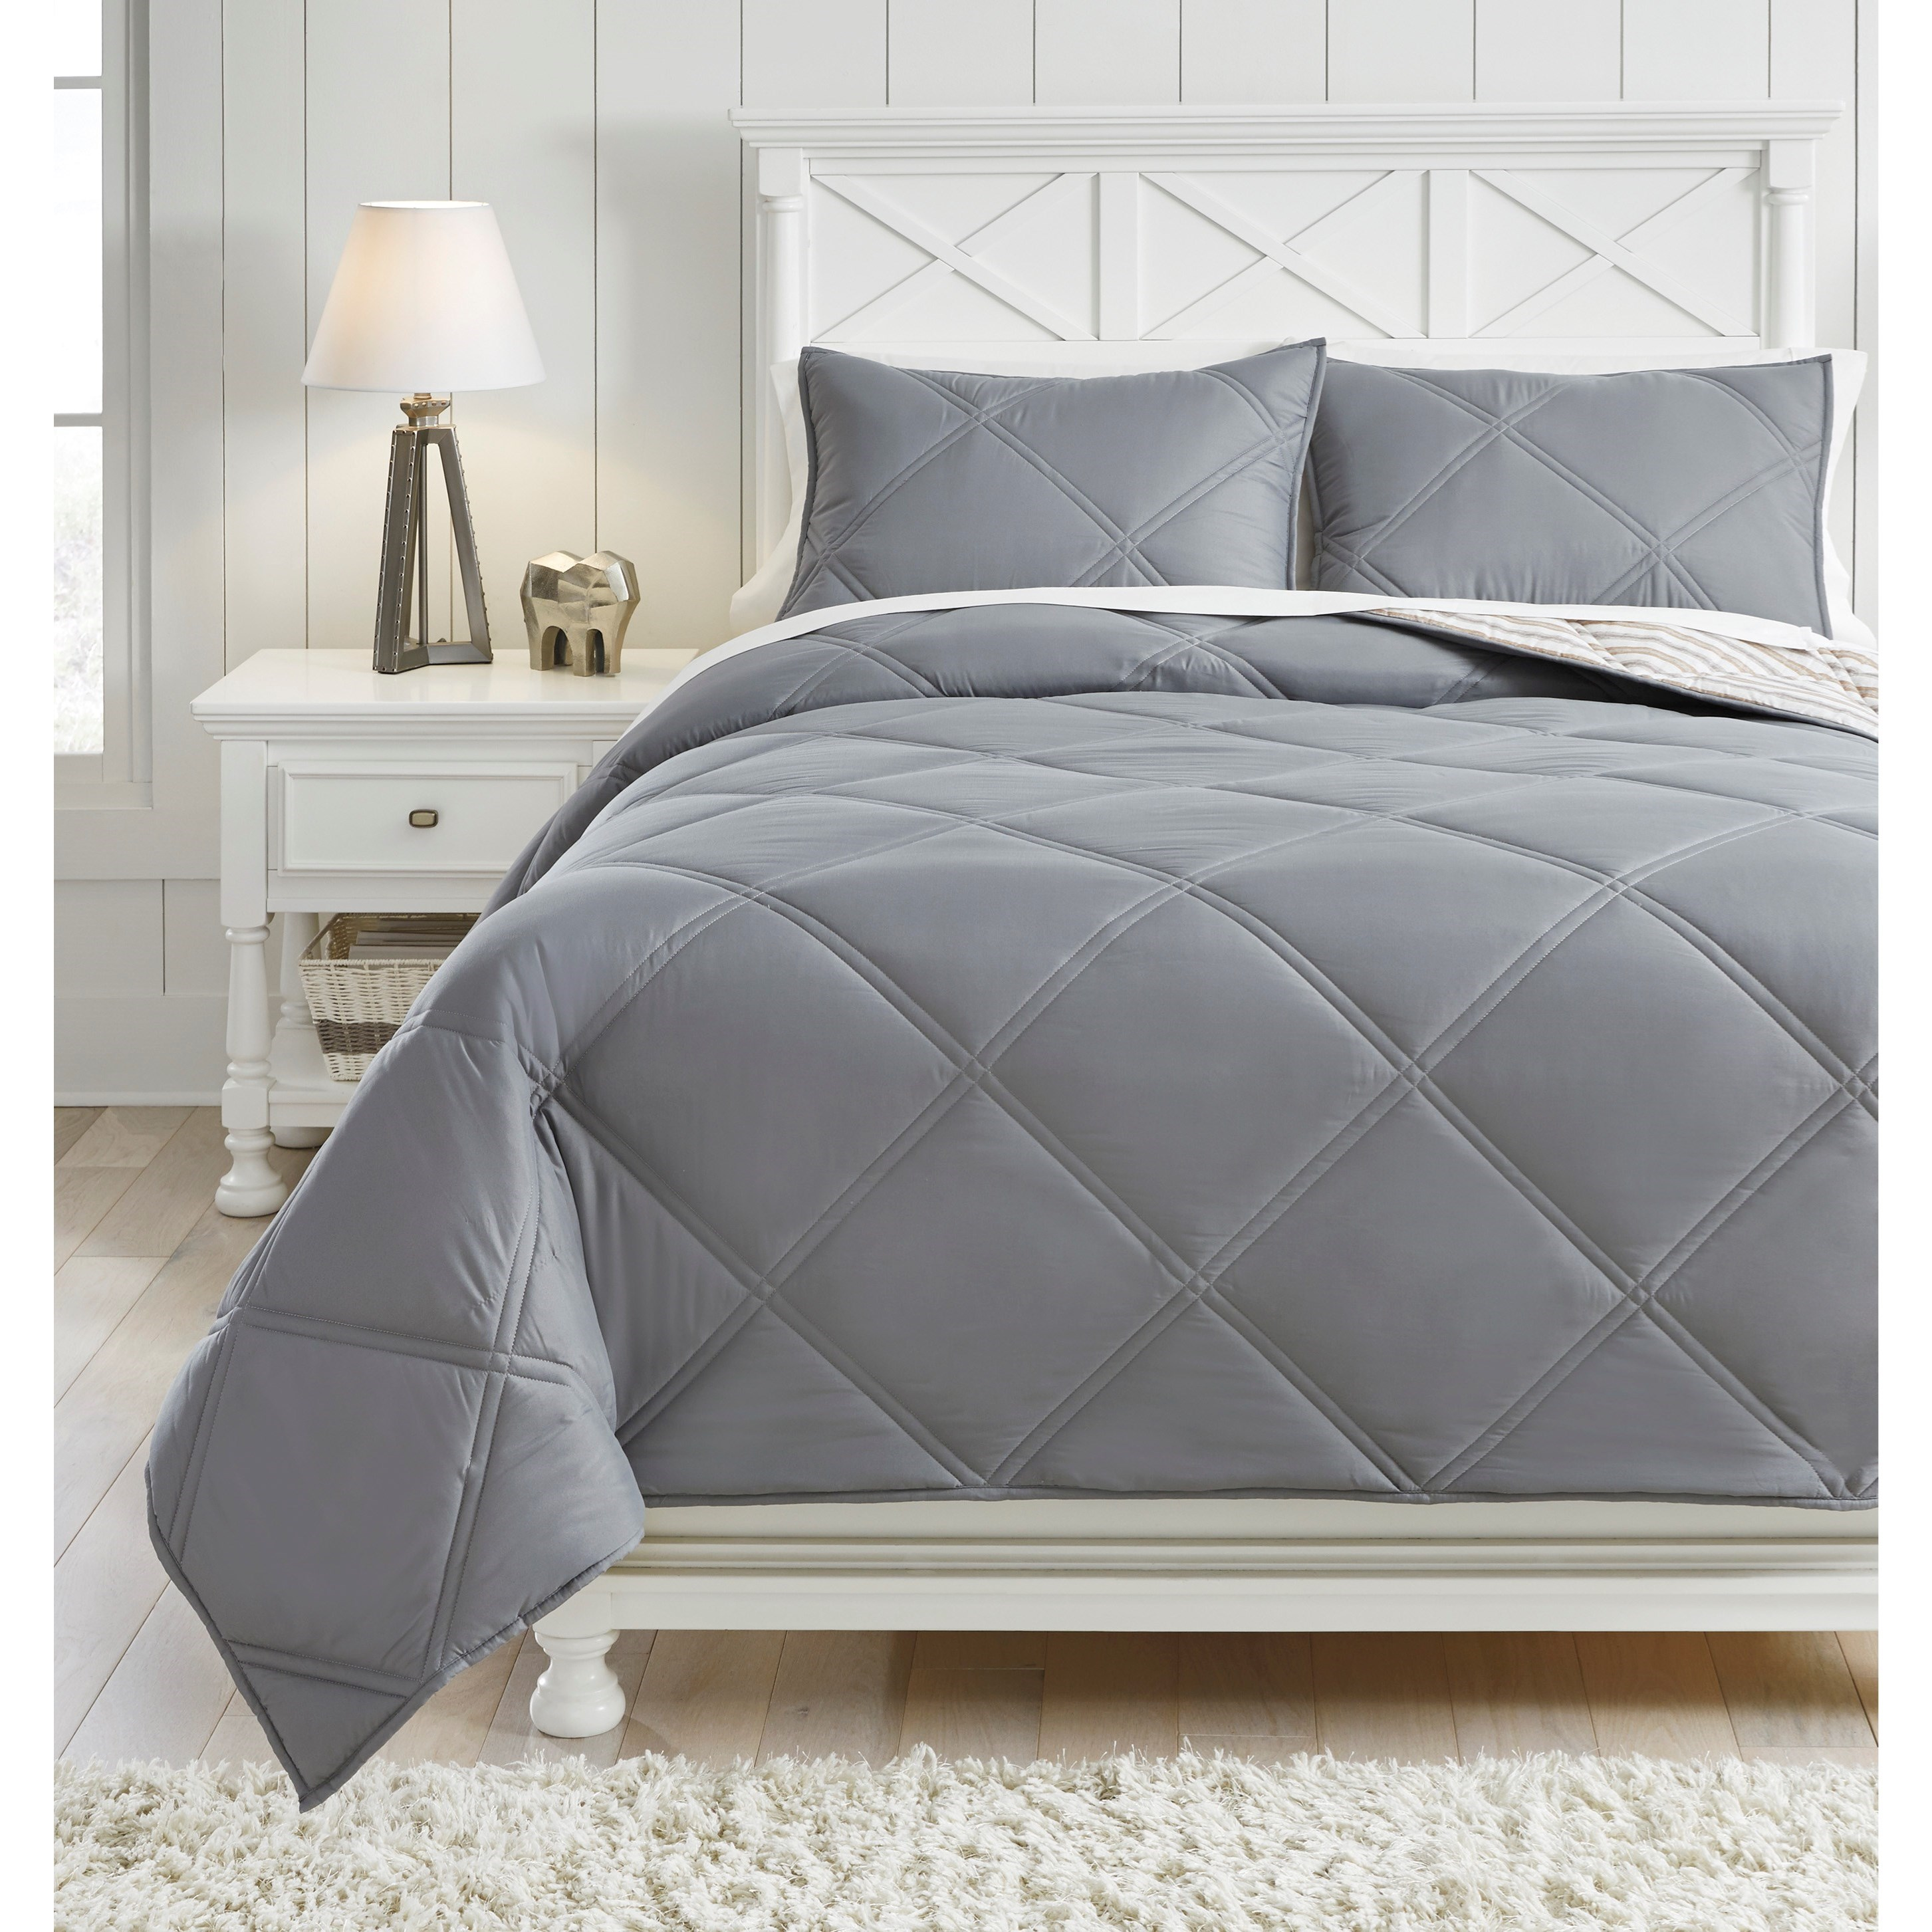 Bedding Sets Full Rhey Tan/Brown/Gray Comforter Set by Signature Design by Ashley at Household Furniture